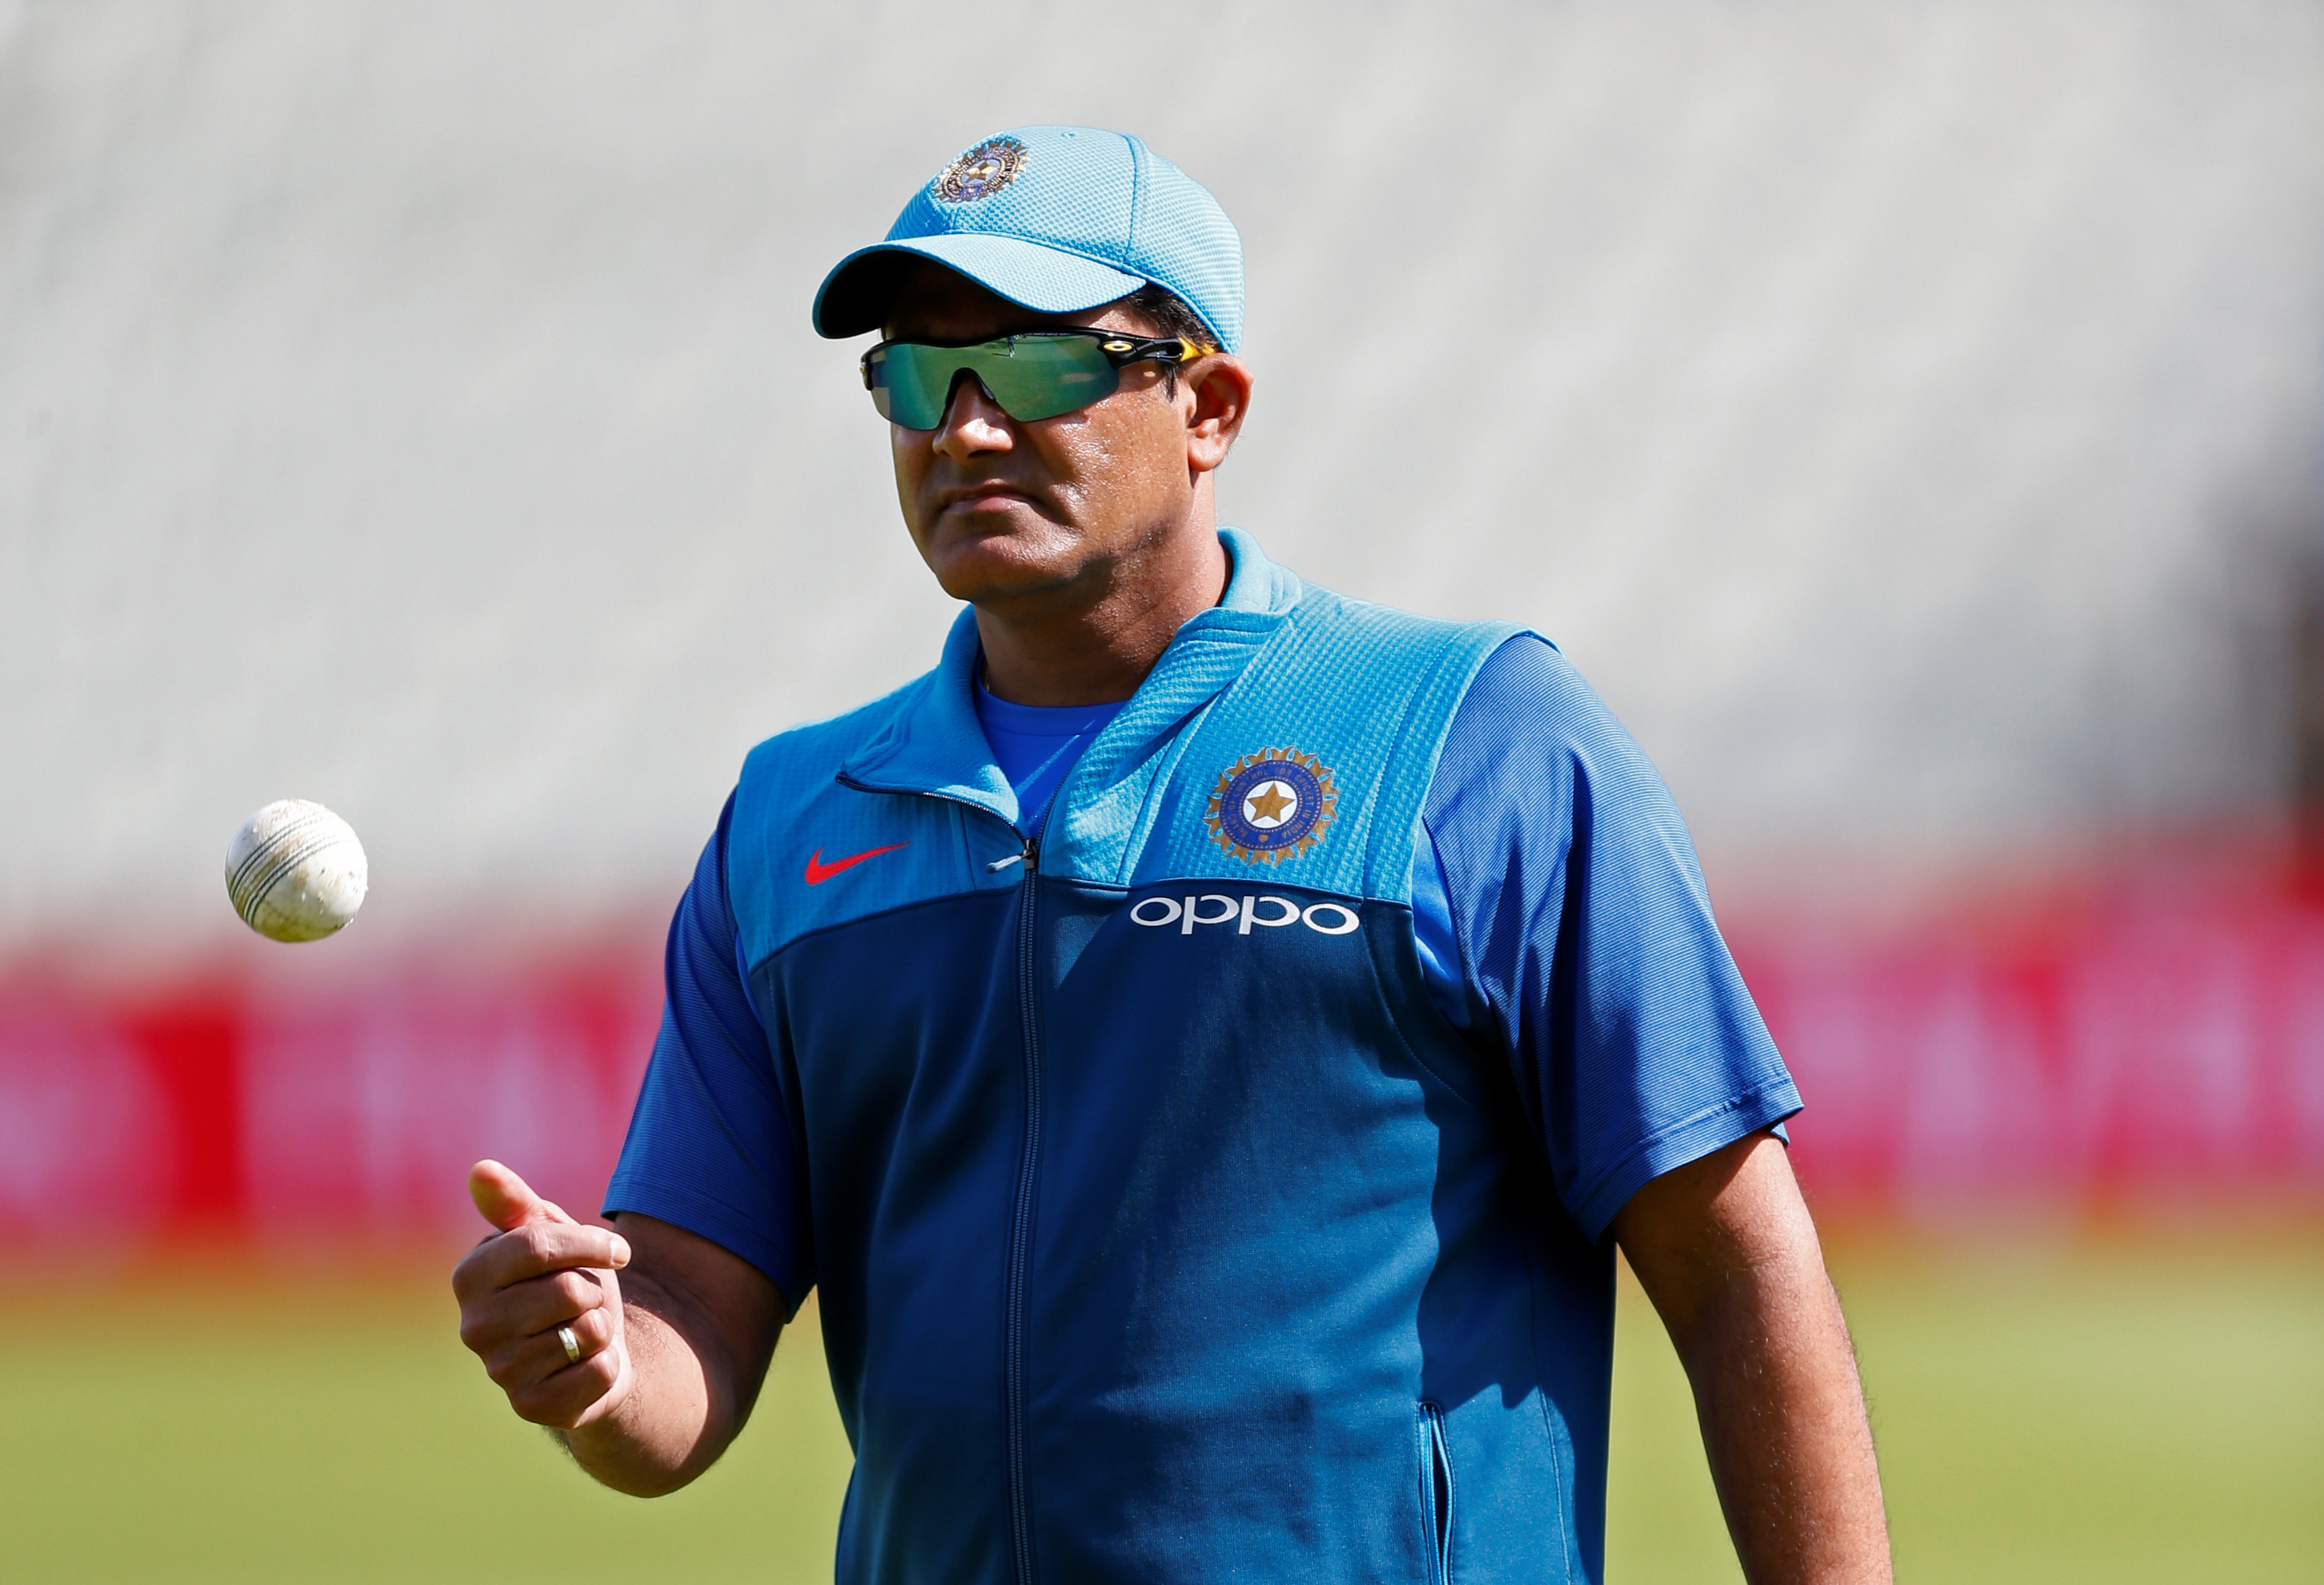 Cricket: Anil Kumble exit seen as triumph for Indian player power